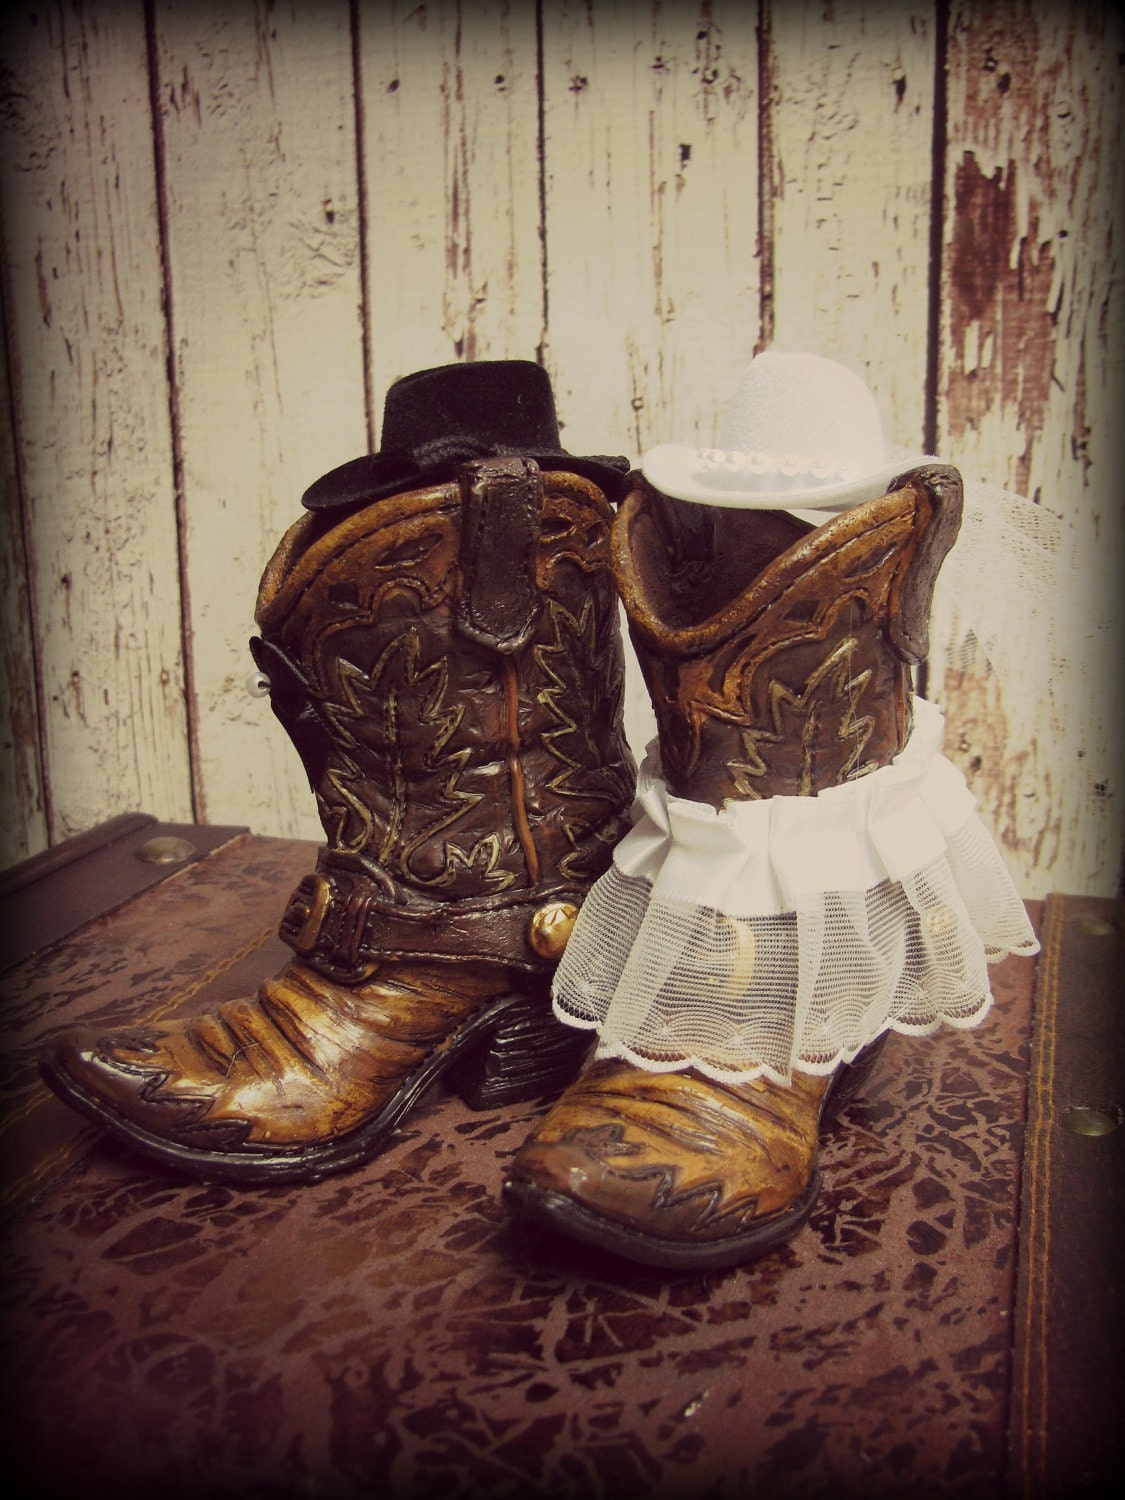 cowboy boot wedding boots rQ*KGjgFUoZHuTVOBQ wedding cowboy boots Western Cowboy Boots Wedding Cake By MorganTheCreator On Etsy